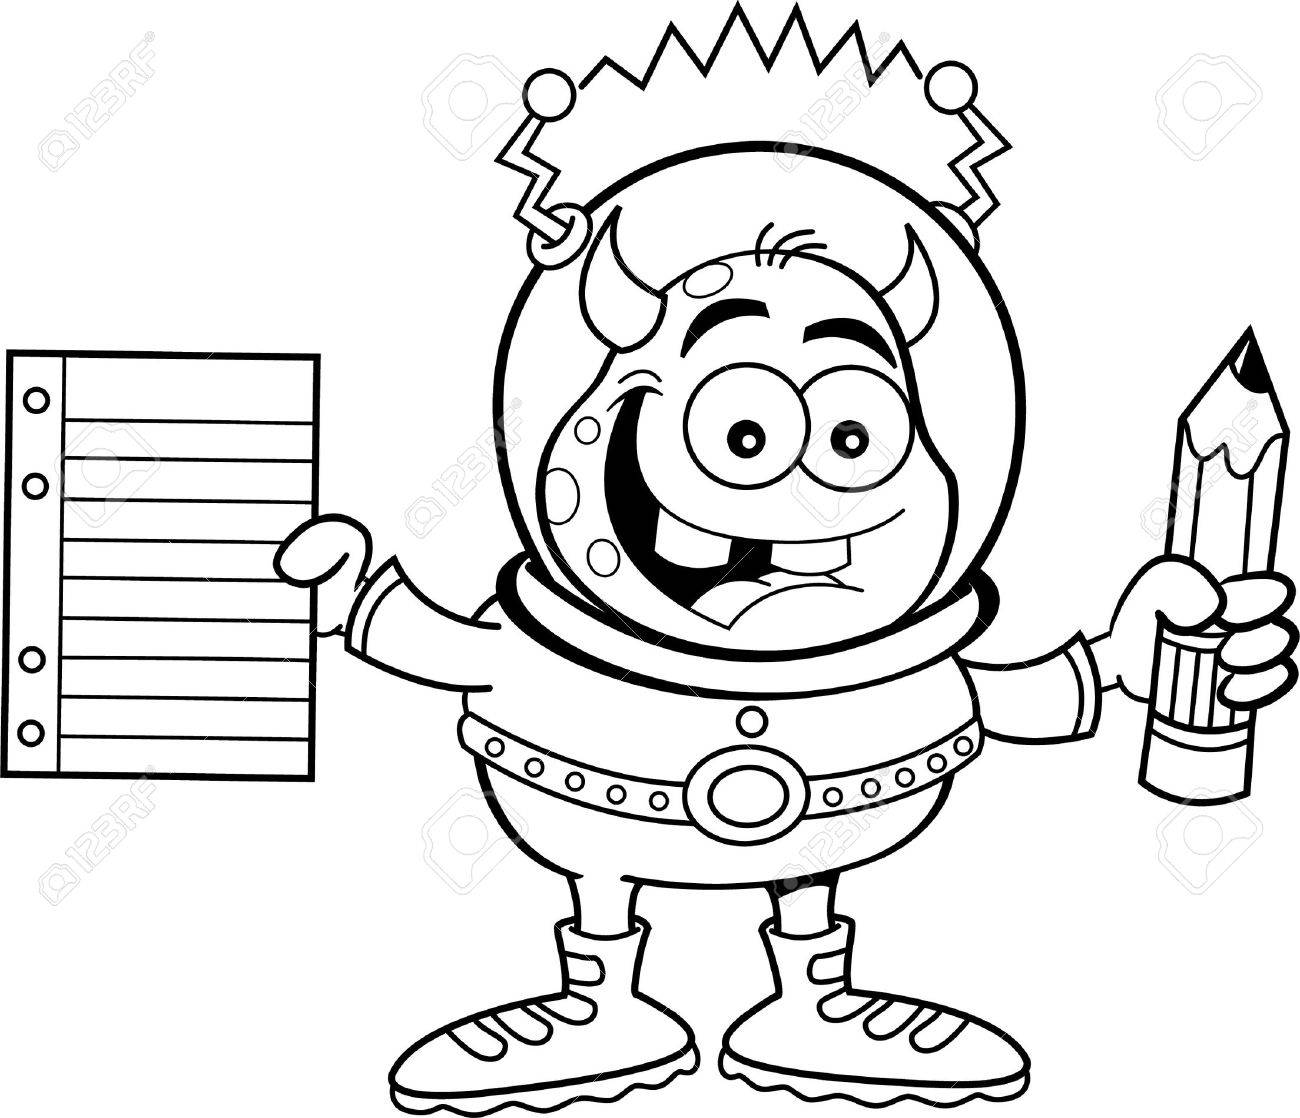 black and white illustration of a alien holding a paper and pencil